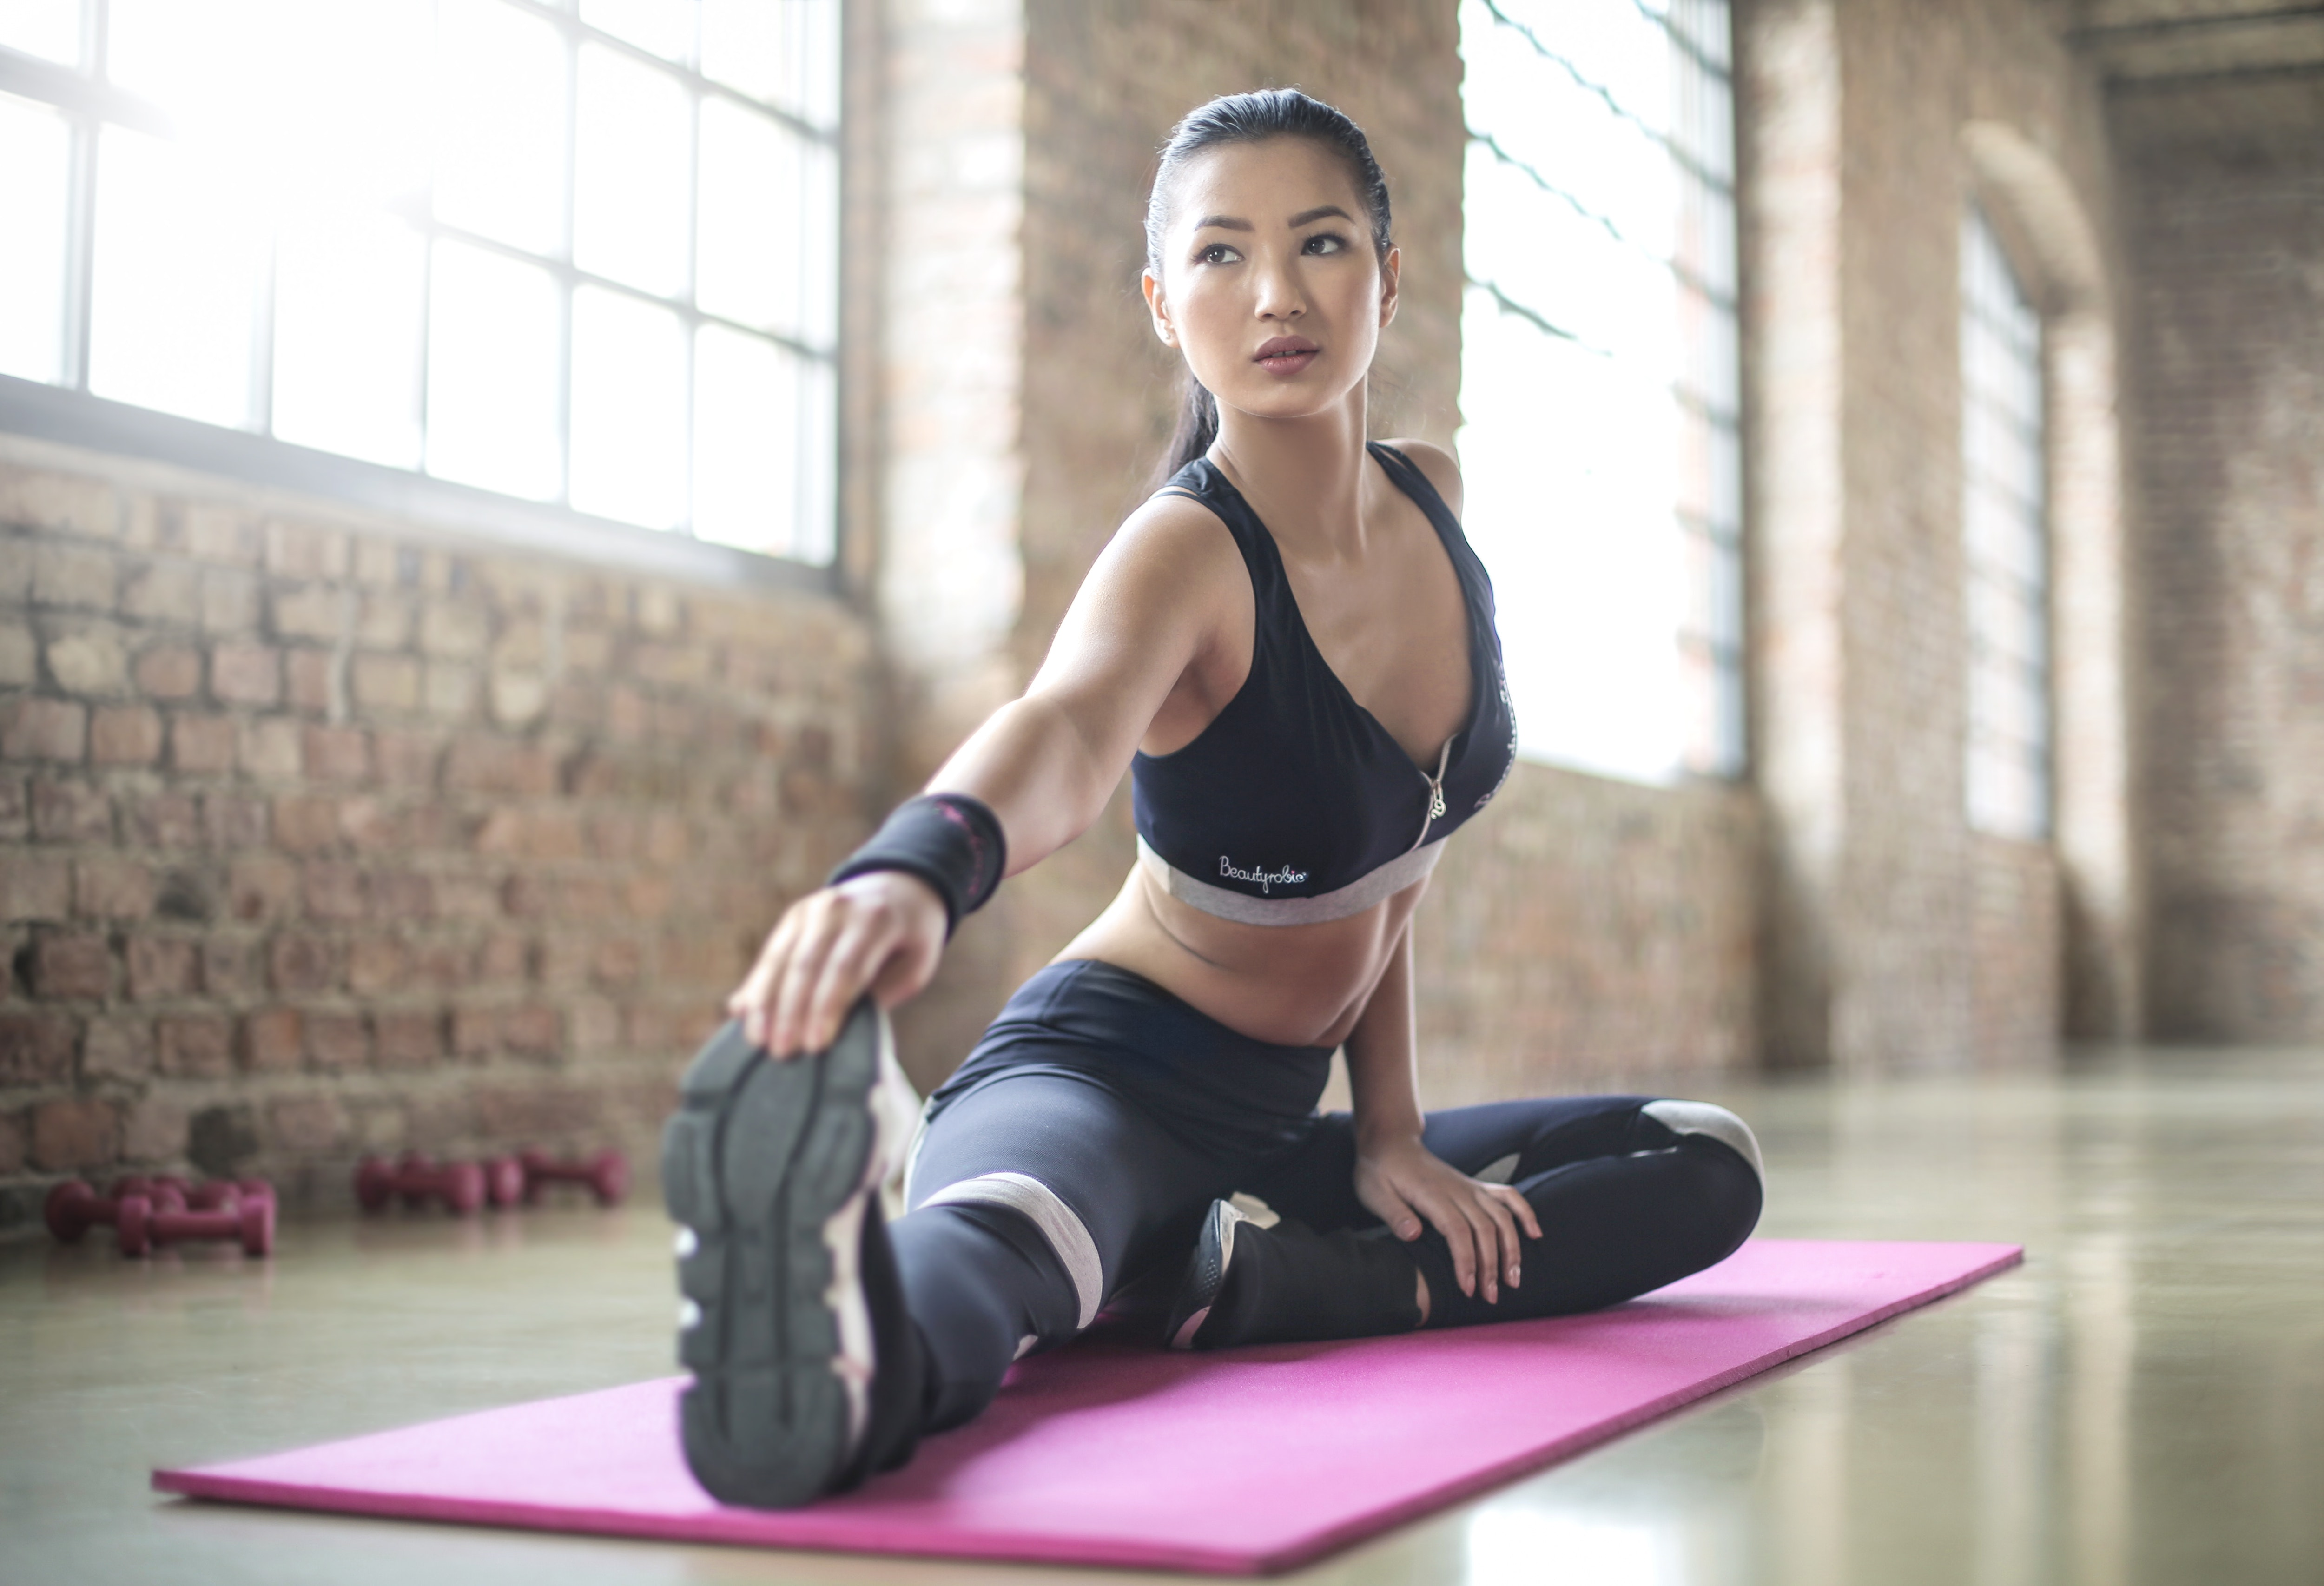 Woman in Black Sports Brassiered and Black Pants Doing Yoga, Active, Indoor, Yoga, Workout, HQ Photo